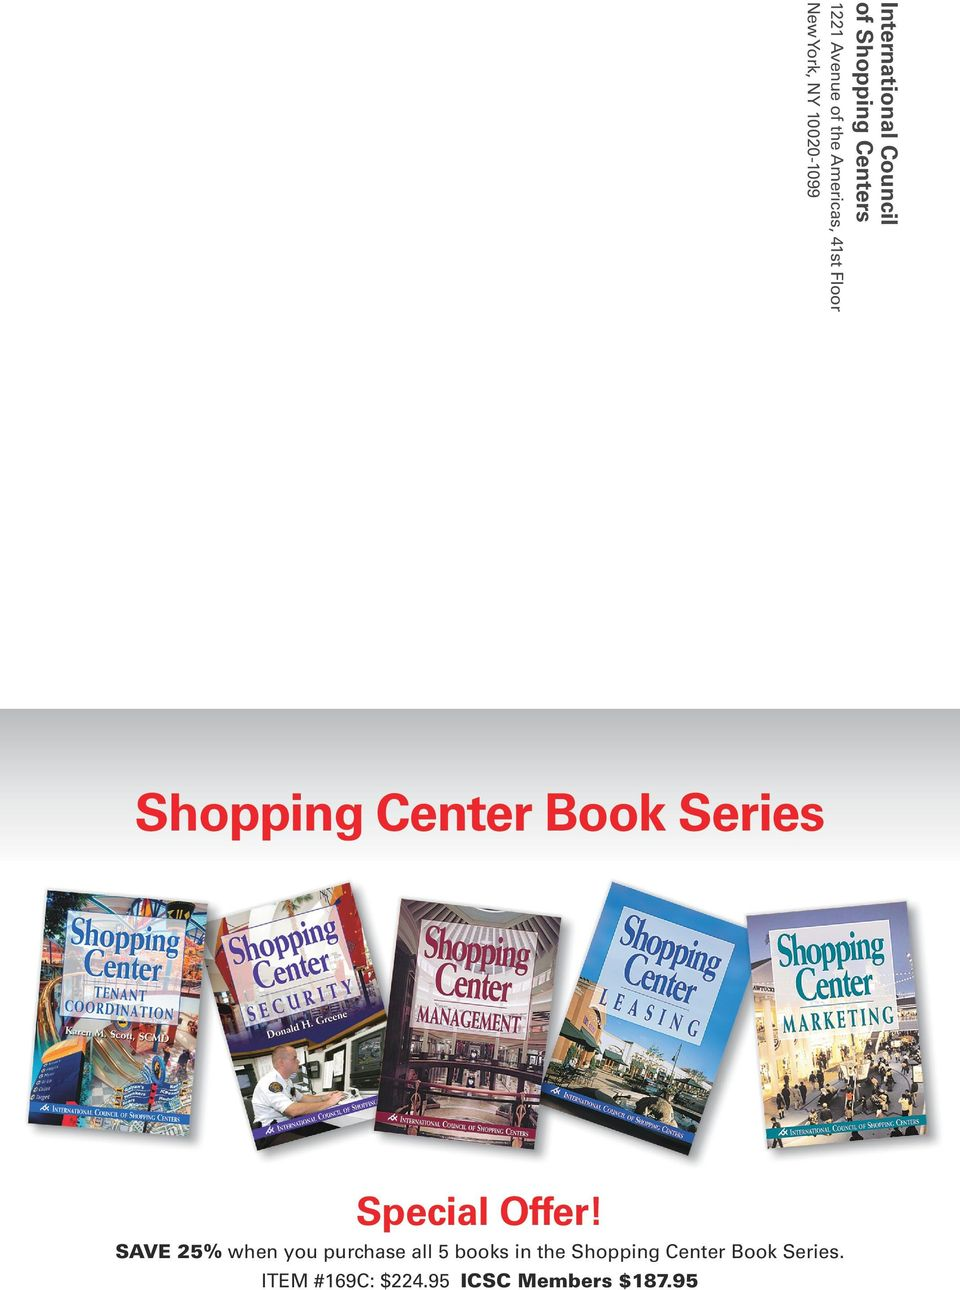 Book Series. ITEM #169C: $224.95 ICSC Members $187.